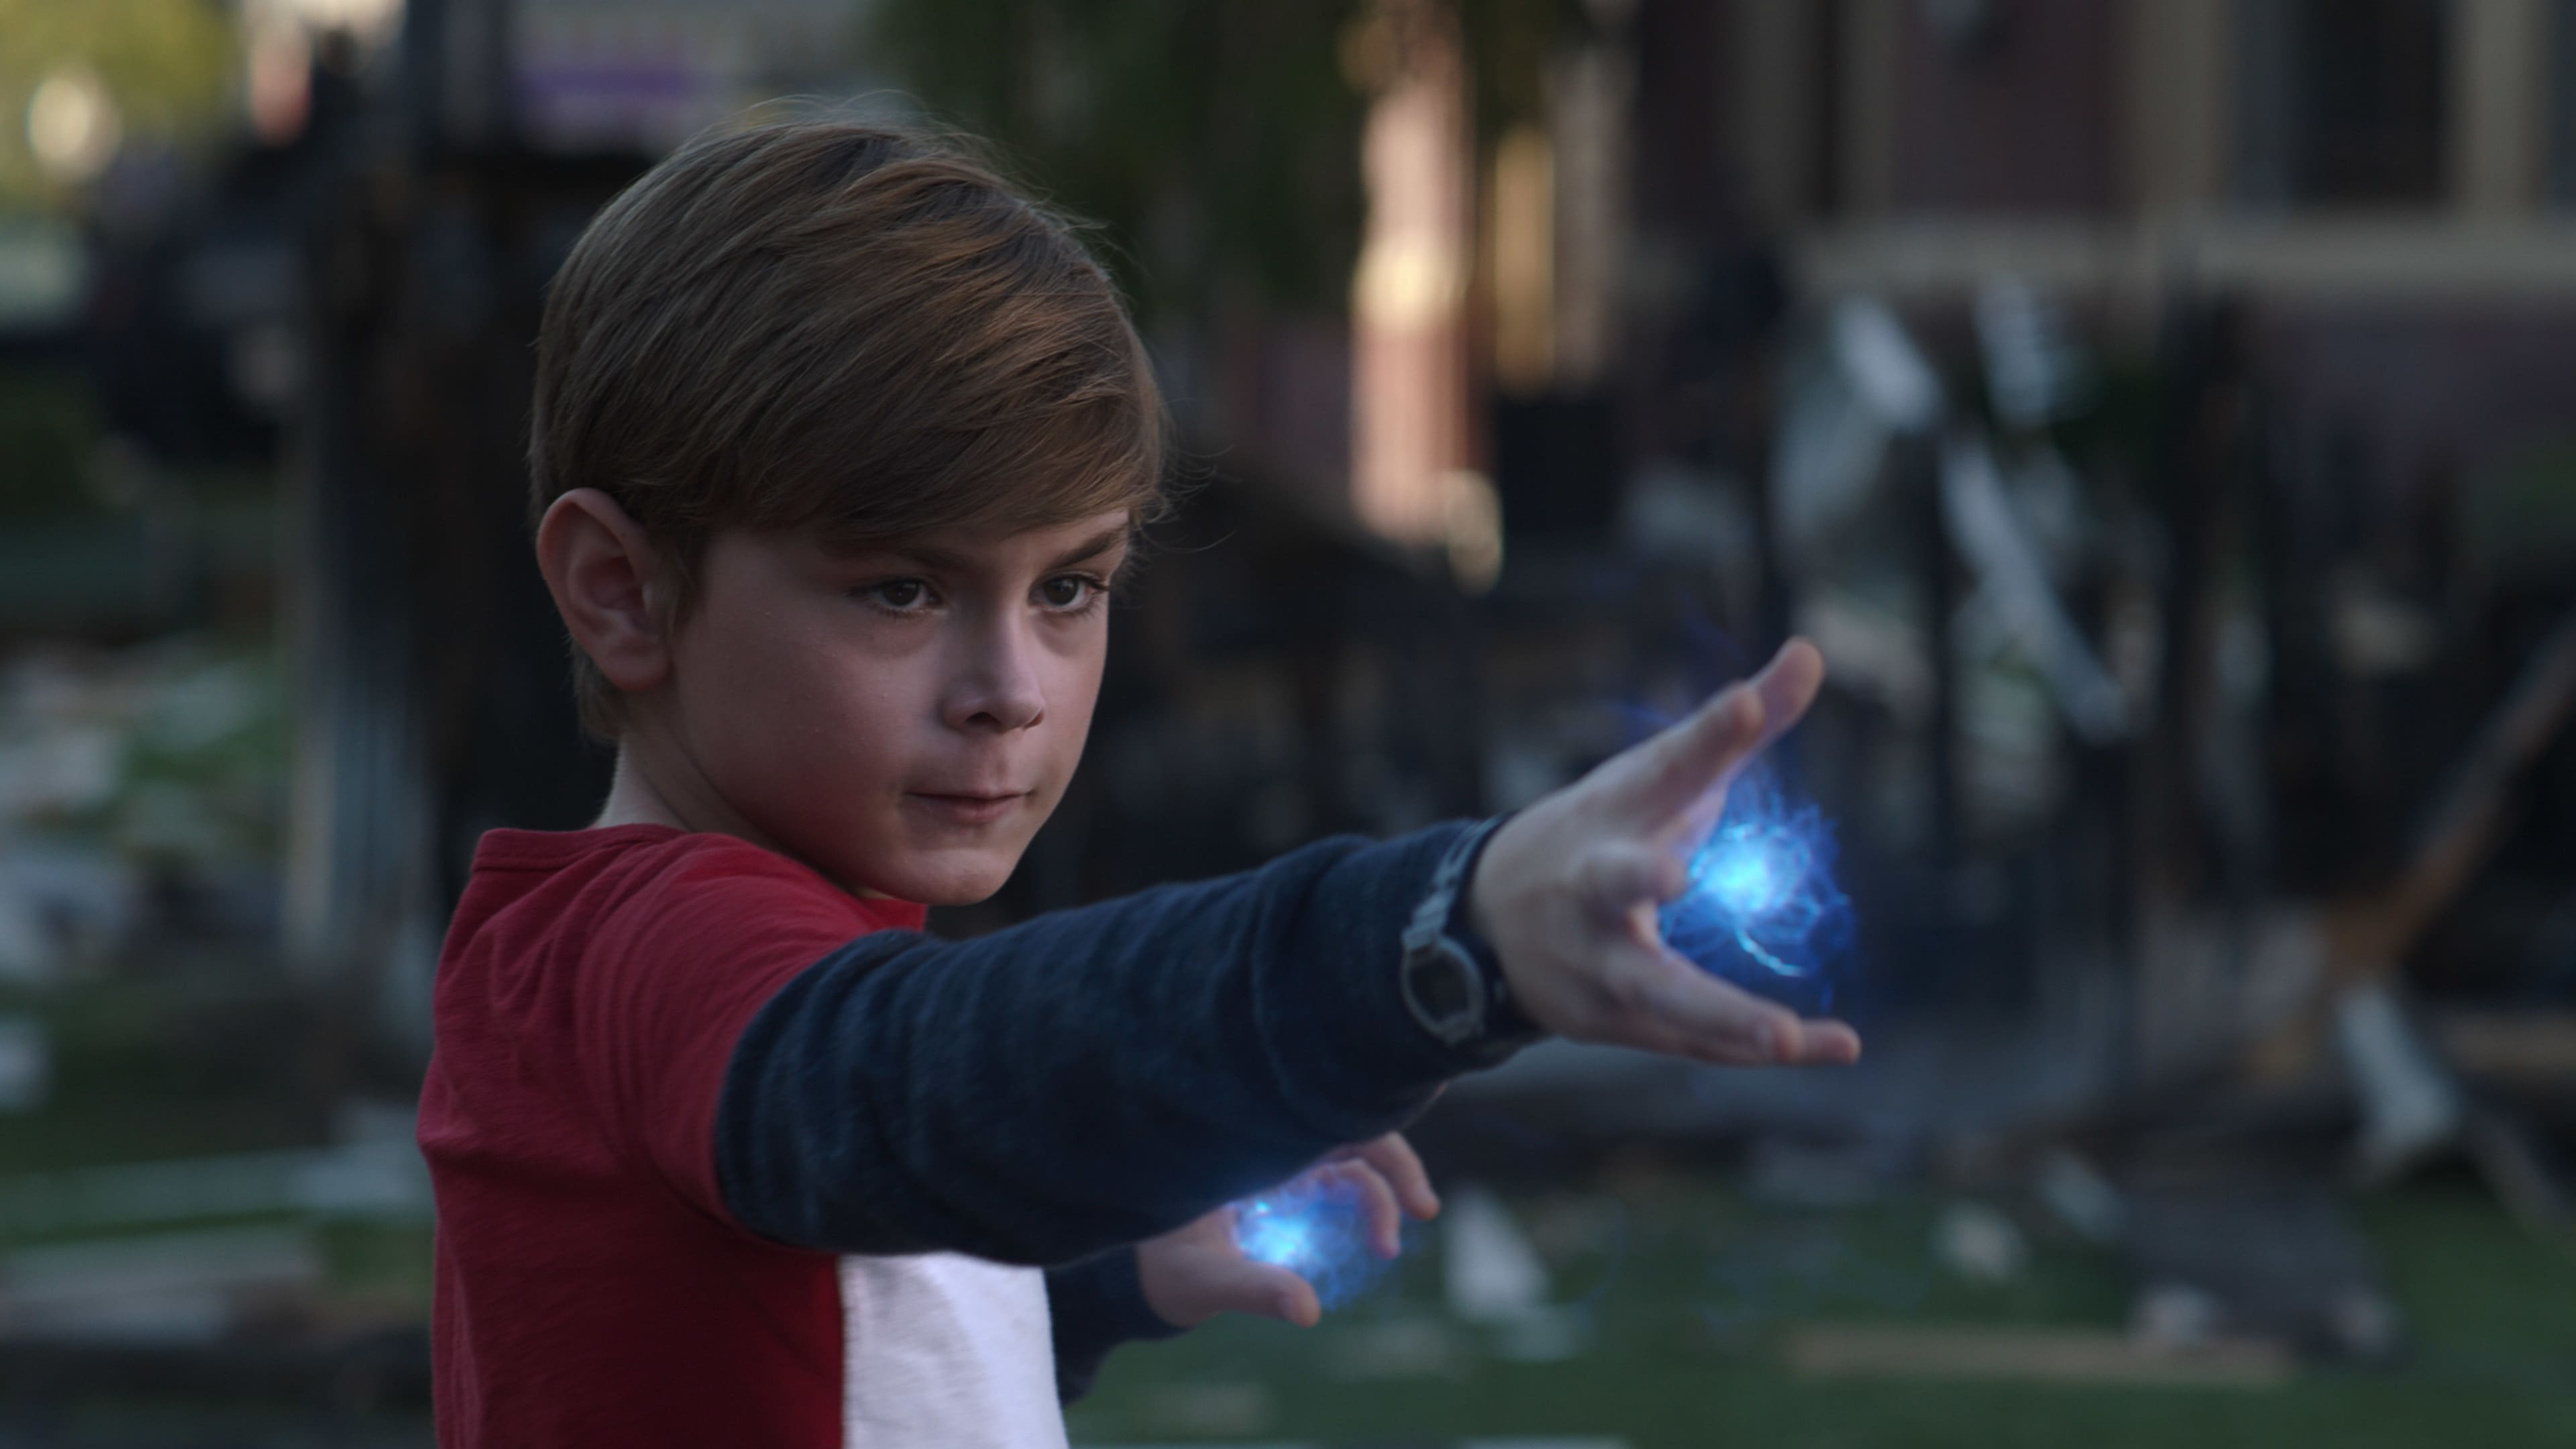 Julian Hilliard as Billy in Marvel Studios' WANDAVISION exclusively on Disney+. Photo courtesy of Marvel Studios. ©Marvel Studios 2021. All Rights Reserved.